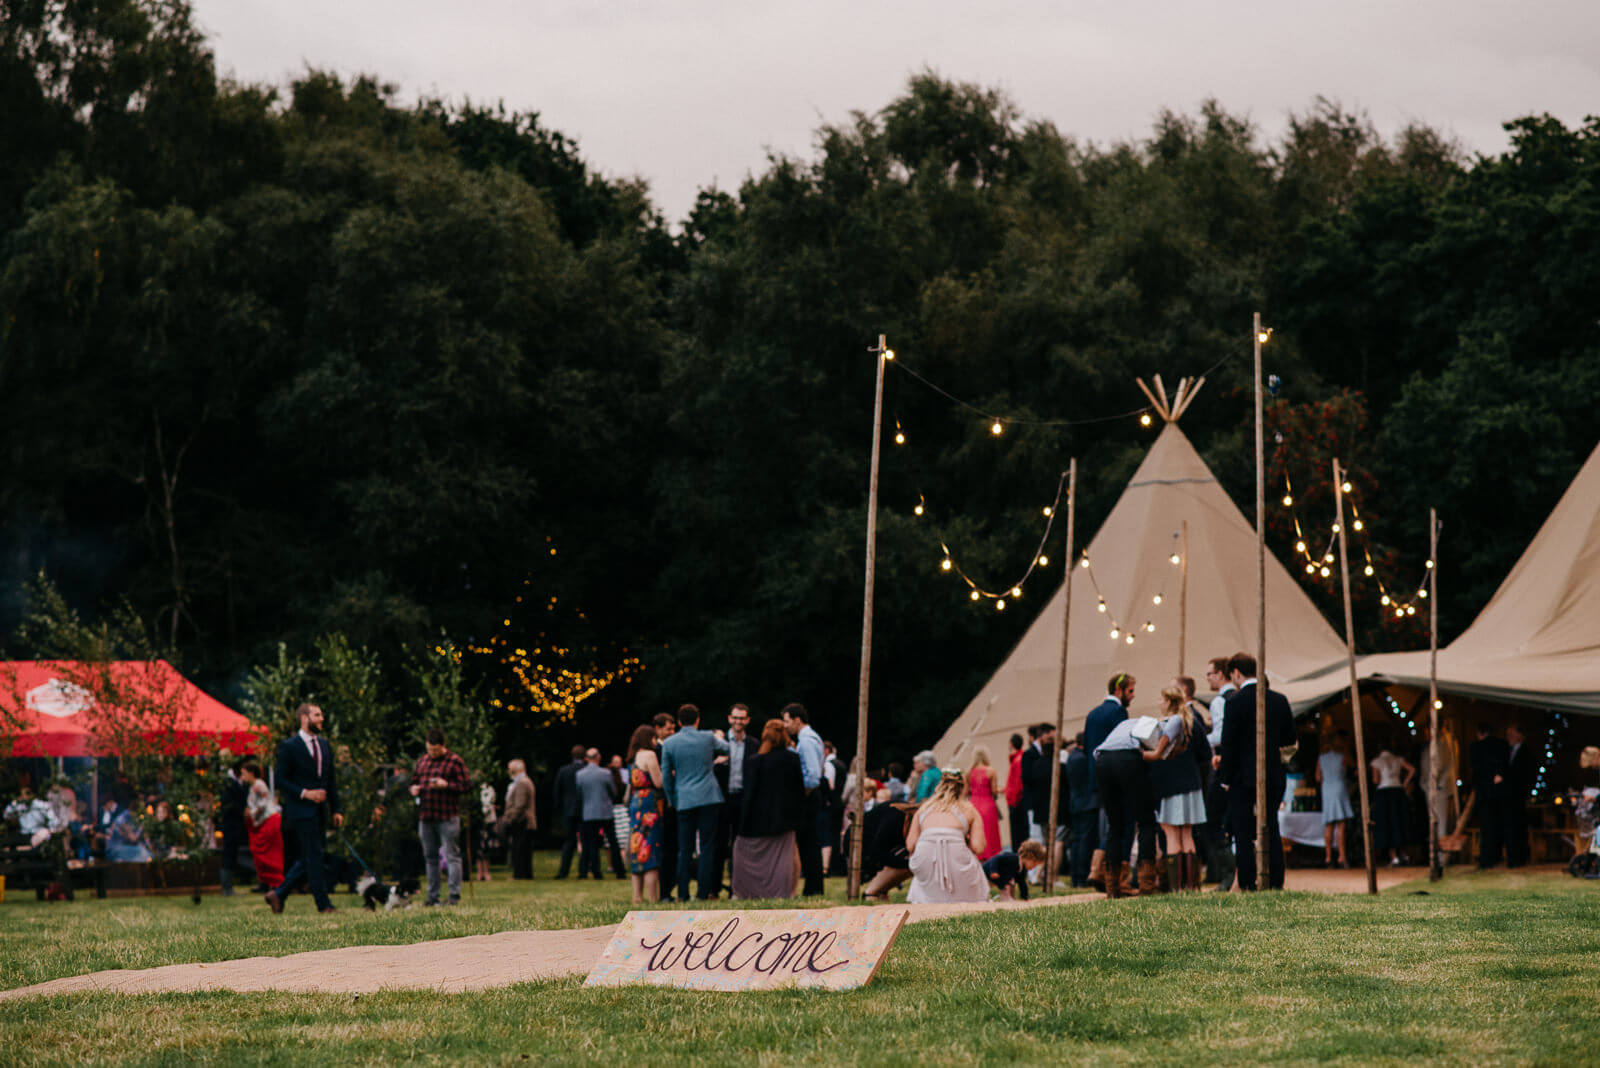 Guests enjoying chatting next to tipi at Shropshire festival style wedding